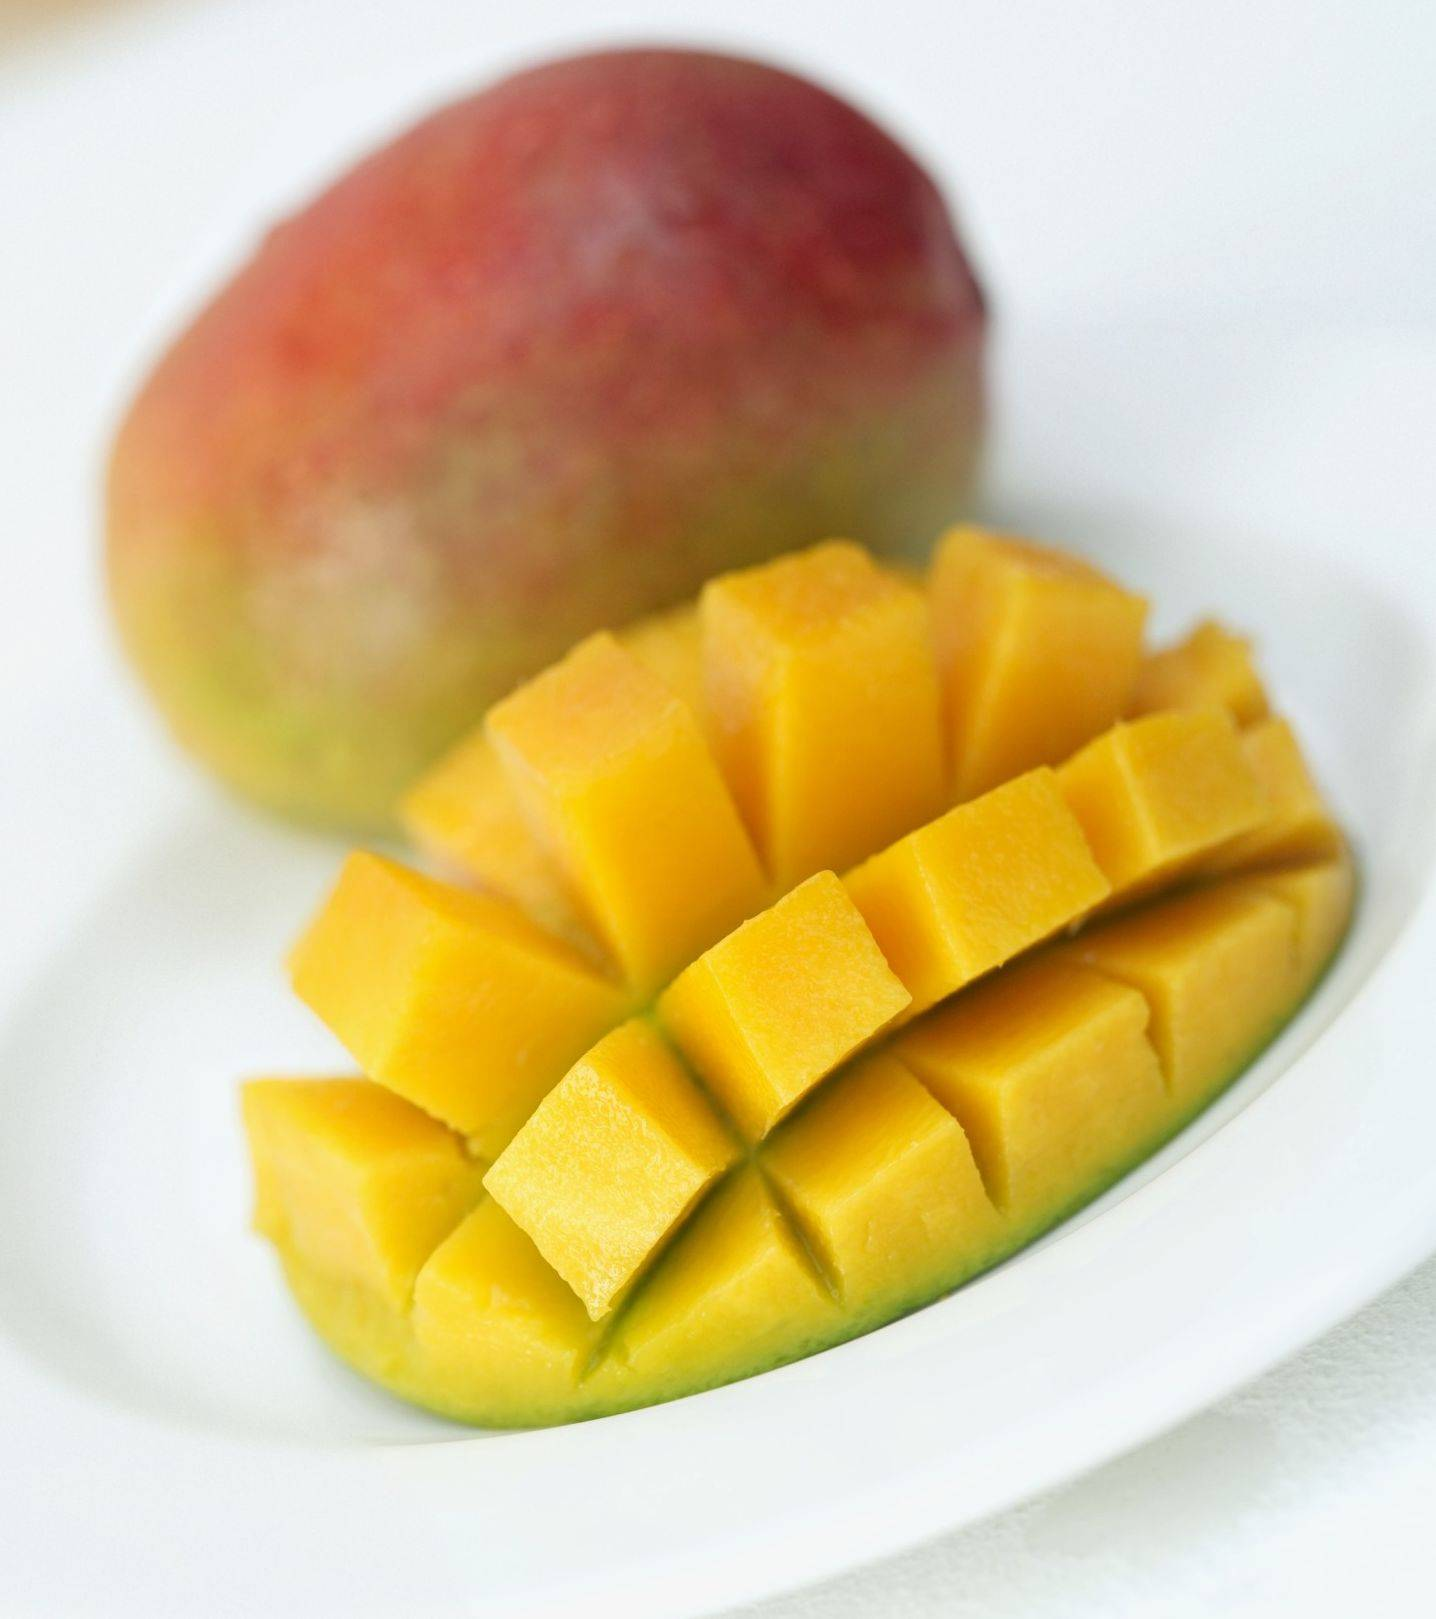 Mangoes used in sorbet provide fiber and important nutrients like vitamins A and C.